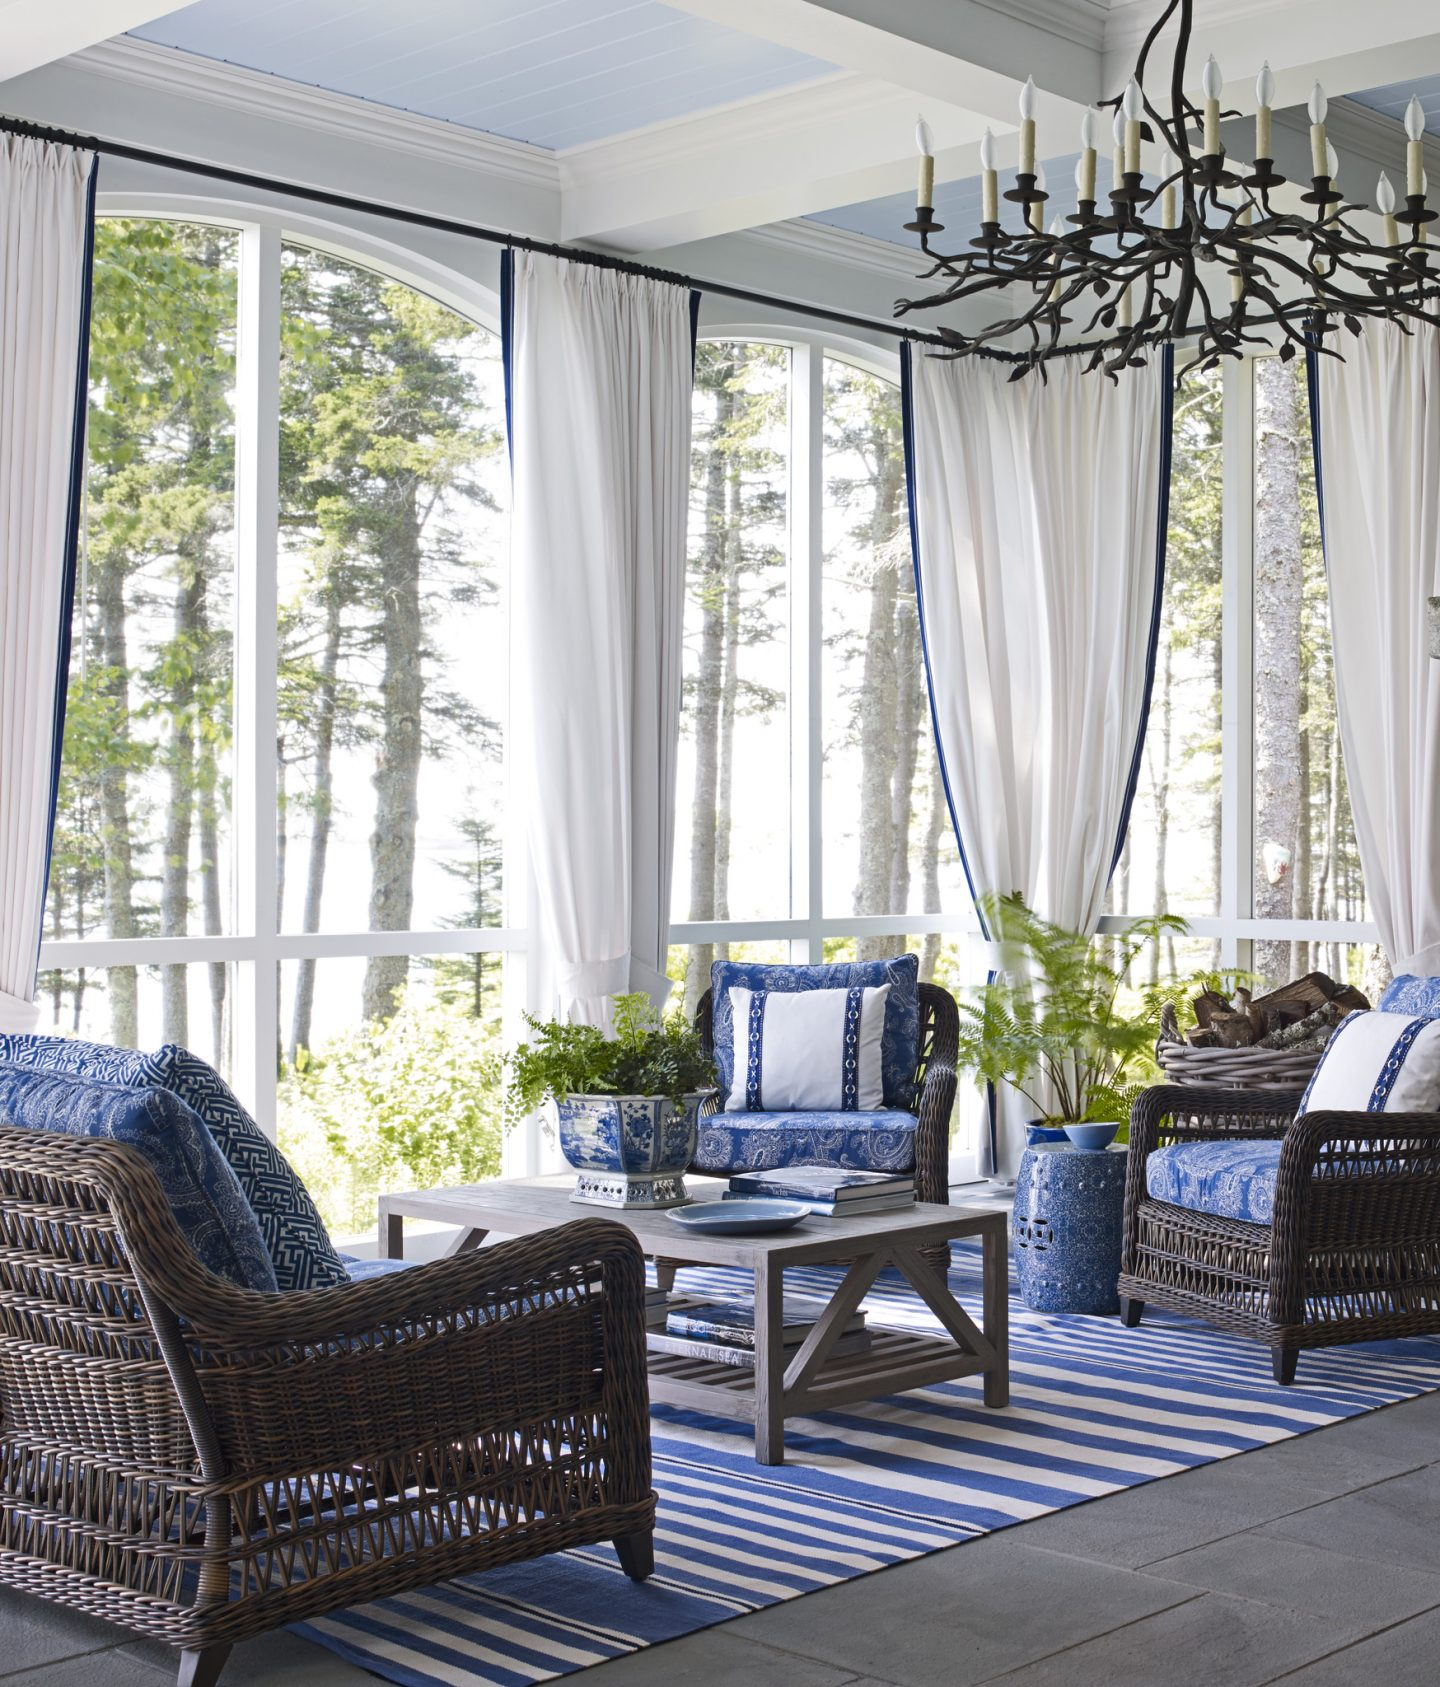 In an architecturally magnificent home in Maine with interior design by Suzanne Kasler, the enclosed porch is attached to the main house. Linen curtains give the exterior room the feeling of an interior room. Bold blue and white stripe rug, various printed fabrics on rattan chair cushions, and blue garden stools are classic coastal design elements offering a warm welcome with cool tones.